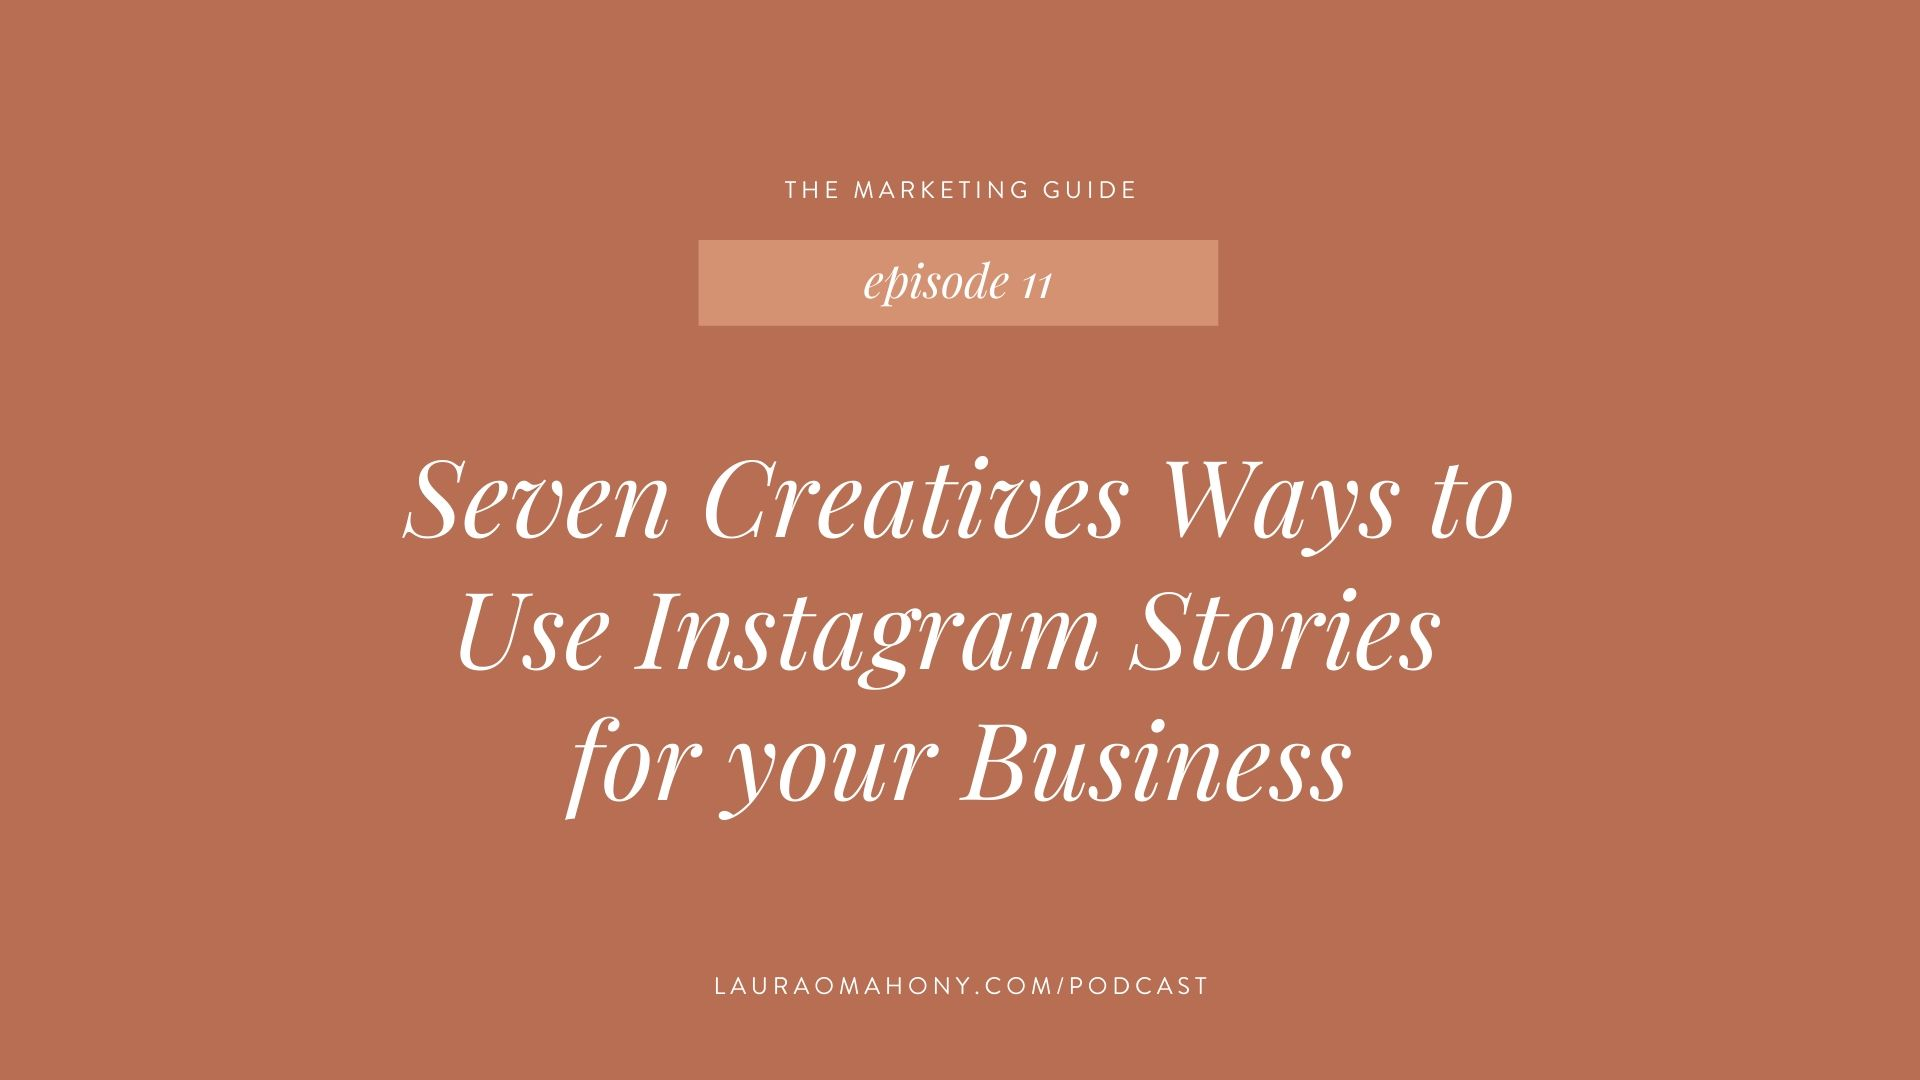 Seven Creative ways to Use Instagram Stories for your Business